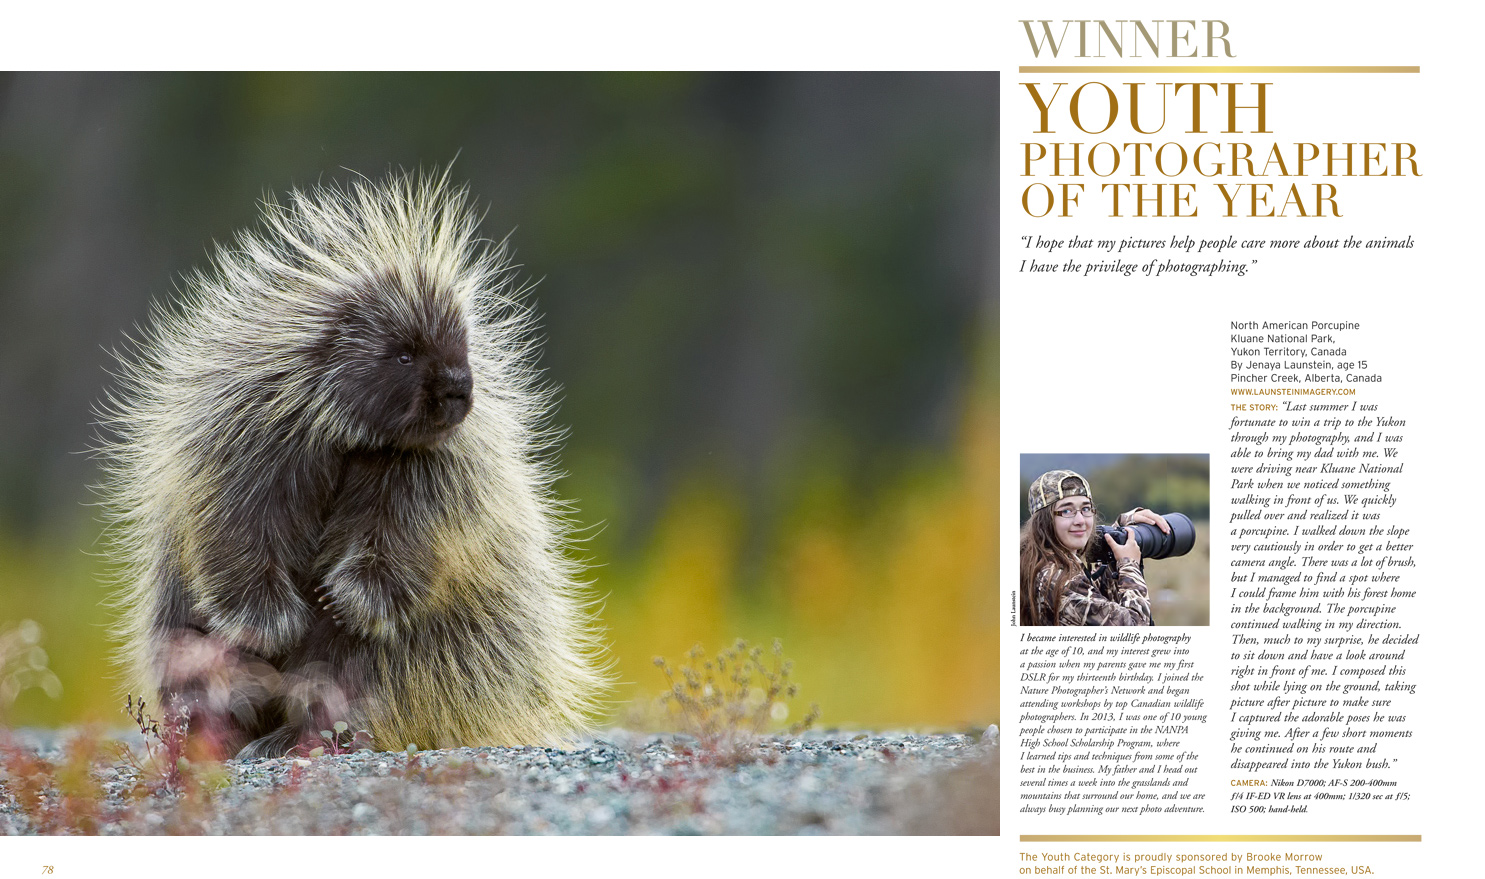 Jenaya Launstein introduced as Youth Photographer of the Year in Nature's Best Magazine